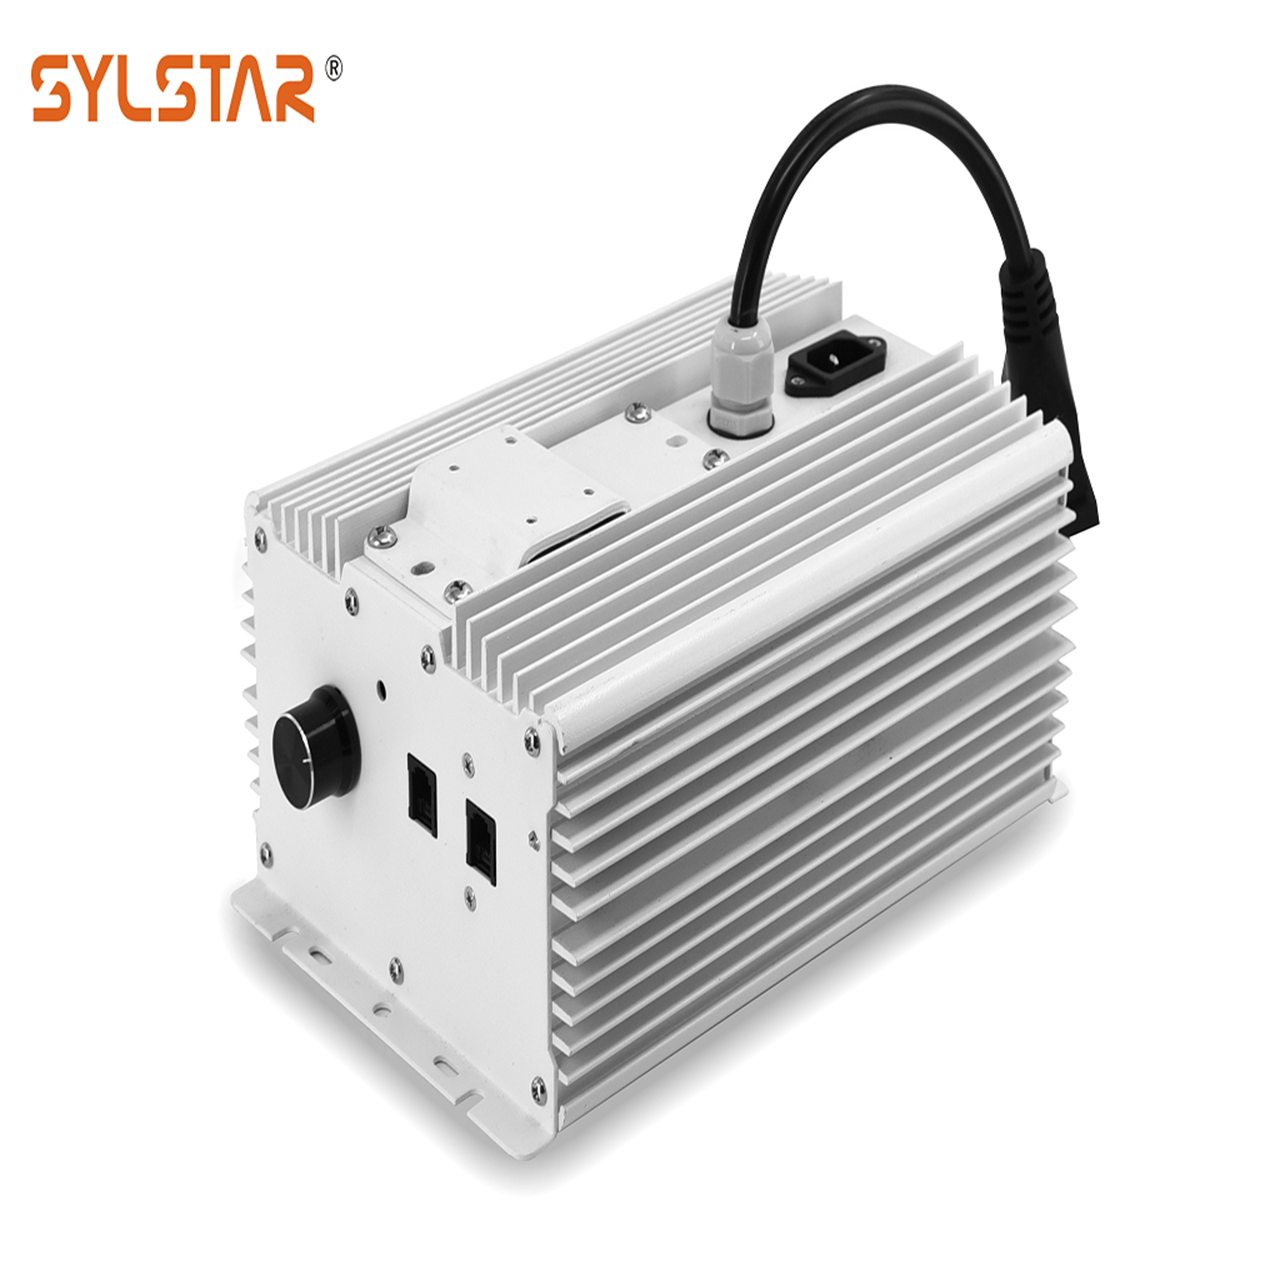 Electronic ballast 315W 120V-277V CMH Ceramic Metal Halide Hydroponic electronic grow light ballast